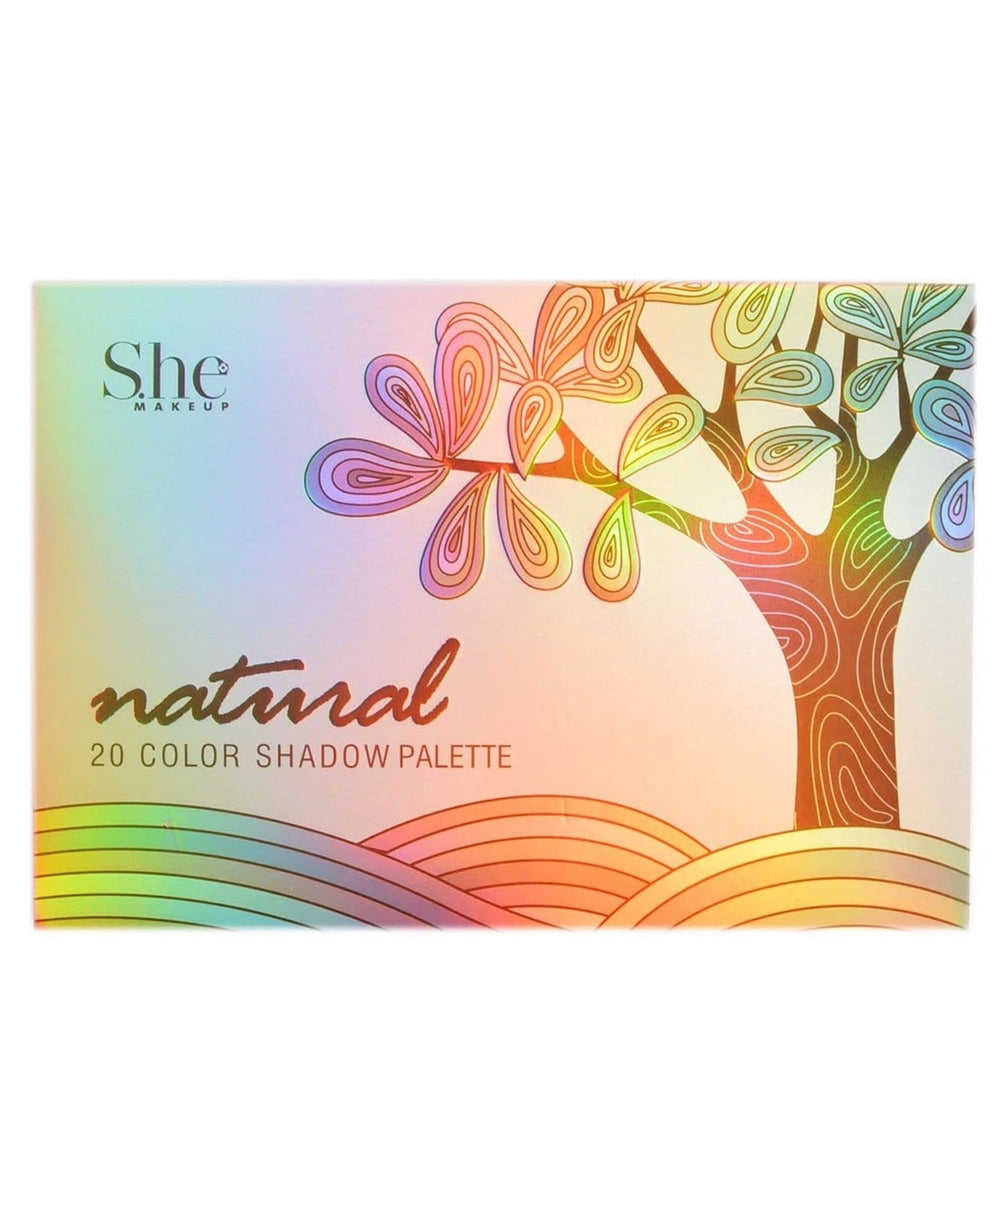 S.he Natural 20 Color Shadow Palette